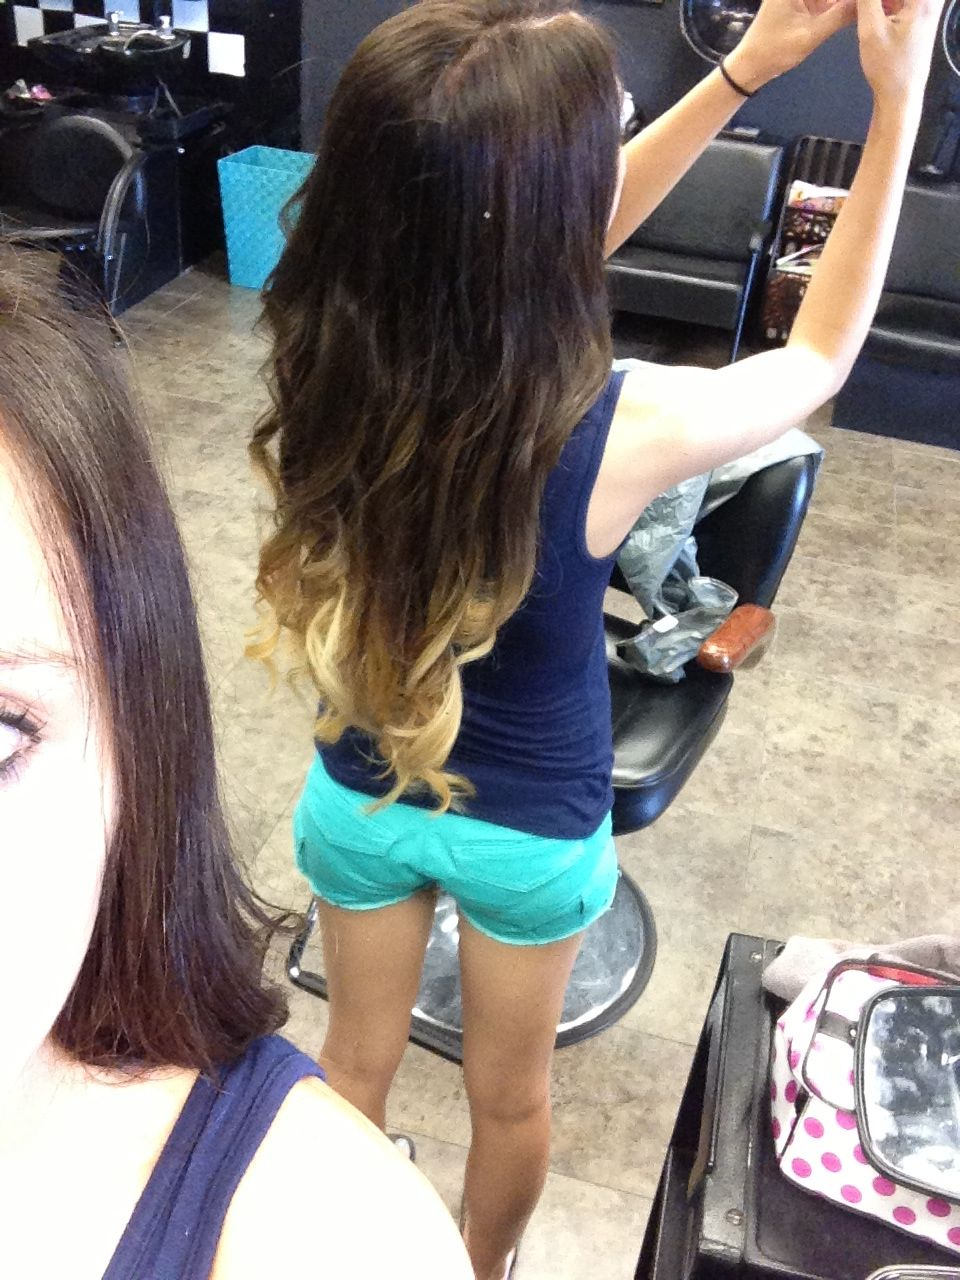 My Ombre I Got Done At Total Fx Hair Salon In Bowling Green Ky Thanks To Ashley Garmon For This Beautiful Hair Hair Salon Hair Beautiful Hair